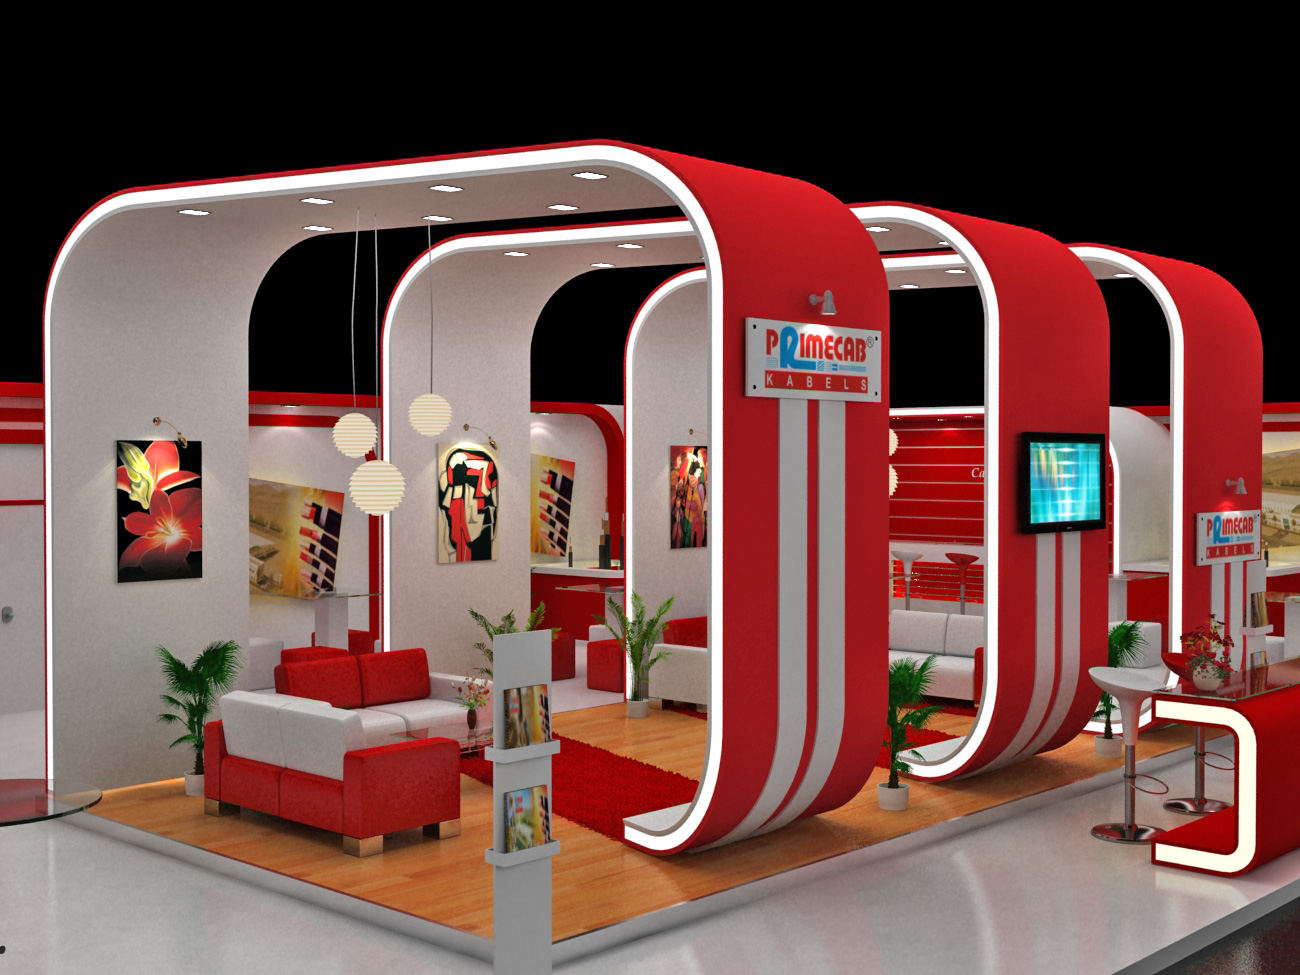 Exhibition Stall Design : Exhibition stall designs by dnyansagar sapkale at coroflot